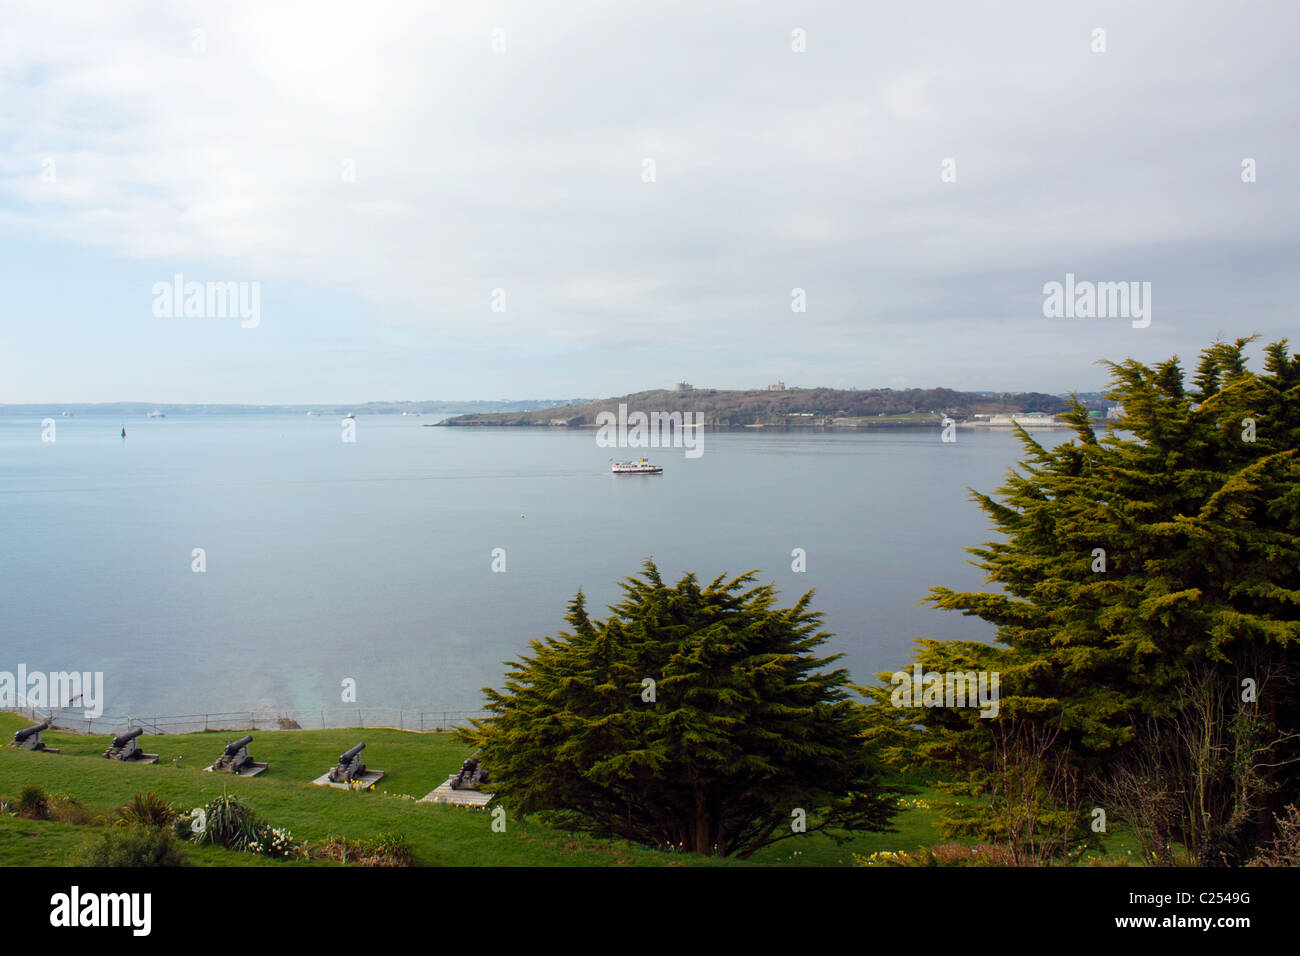 THE WATERS OF CARRICK ROADS BETWEEN St MAWES CASTLE AND FALMOUTH. CORNWALL UK. - Stock Image